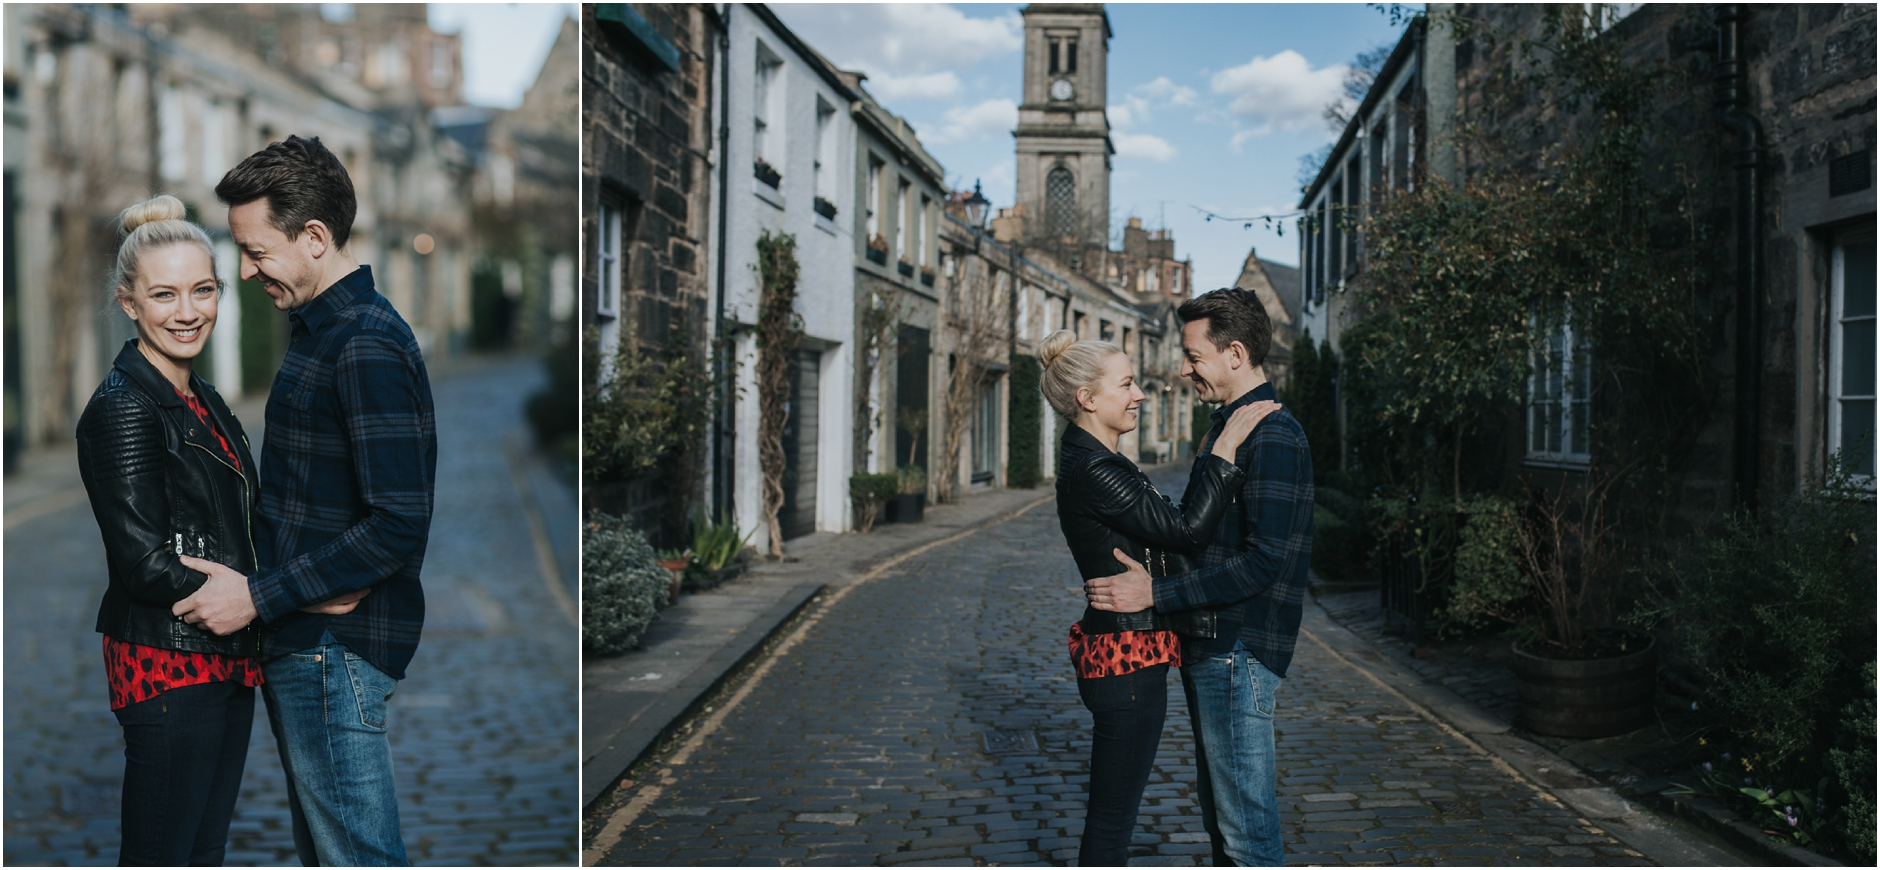 stockbridge edinburgh pre wedding engagement photoshoot